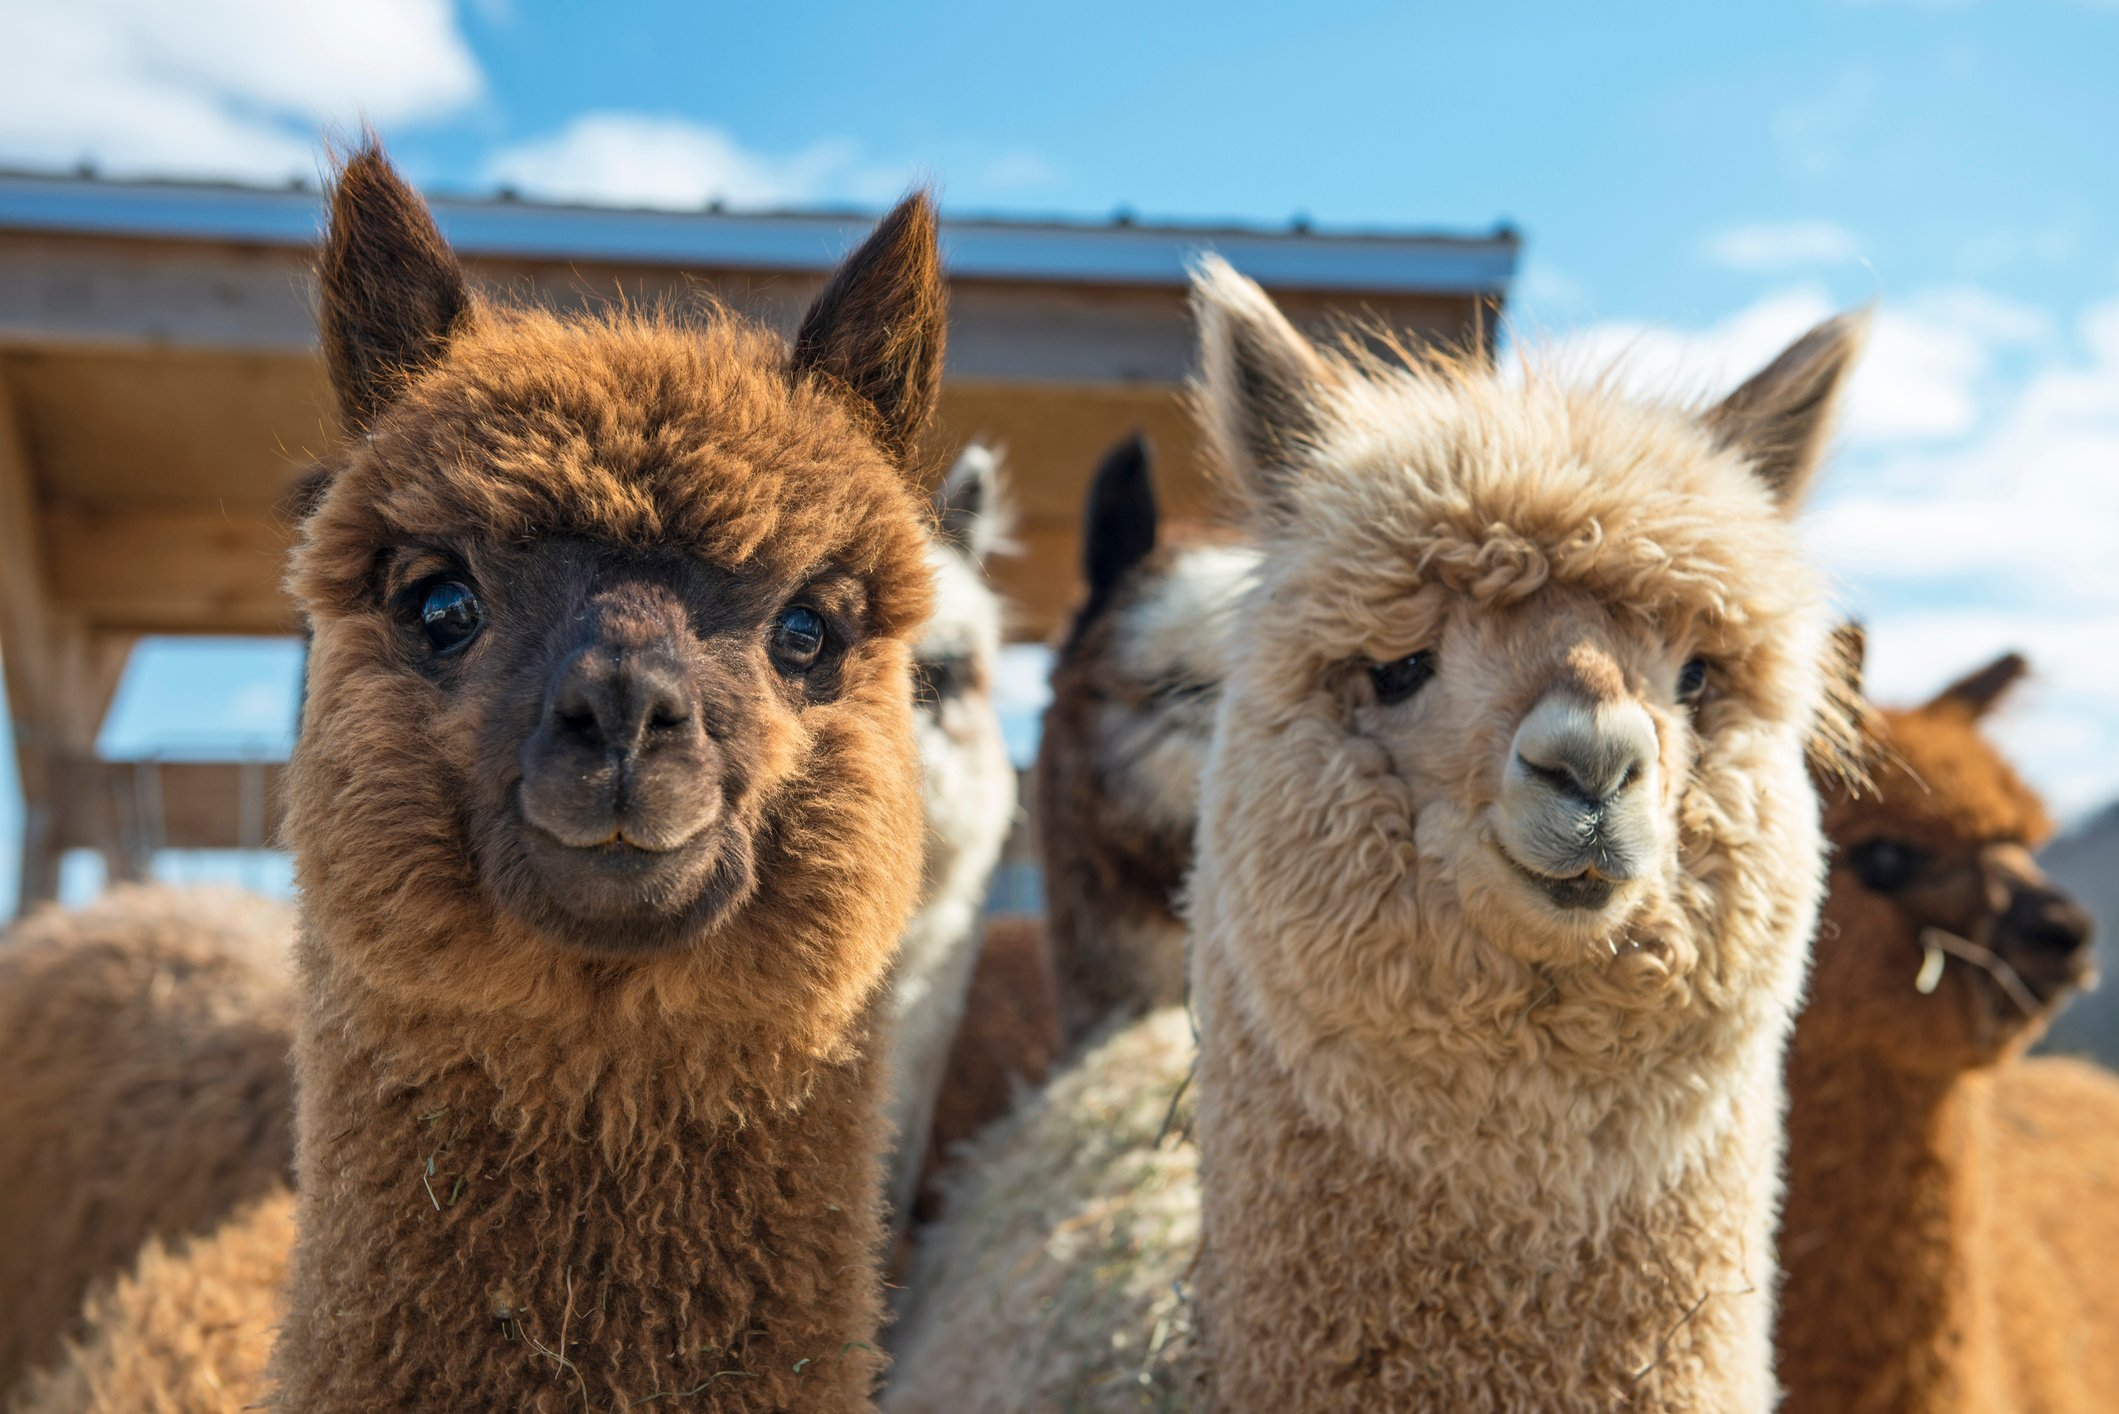 All About Raising Alpacas: An Interview With Pat Waters